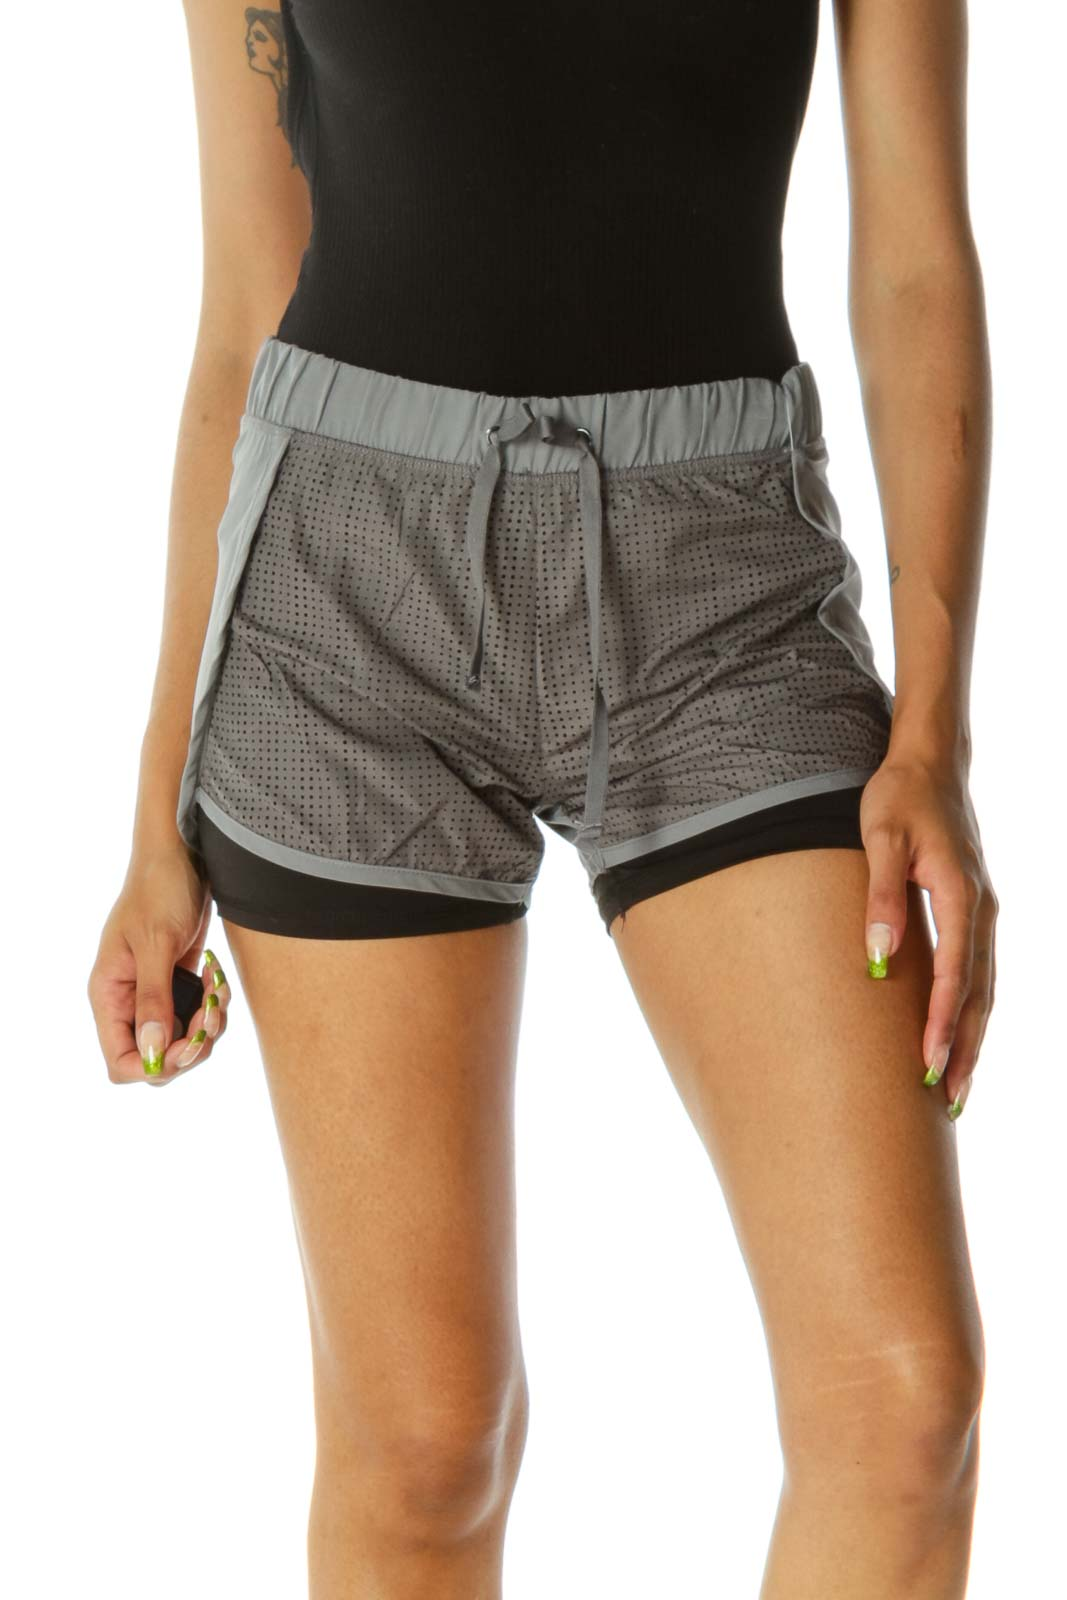 Gray Black Inside-Shorts Cut-Out Mesh Front Shorts